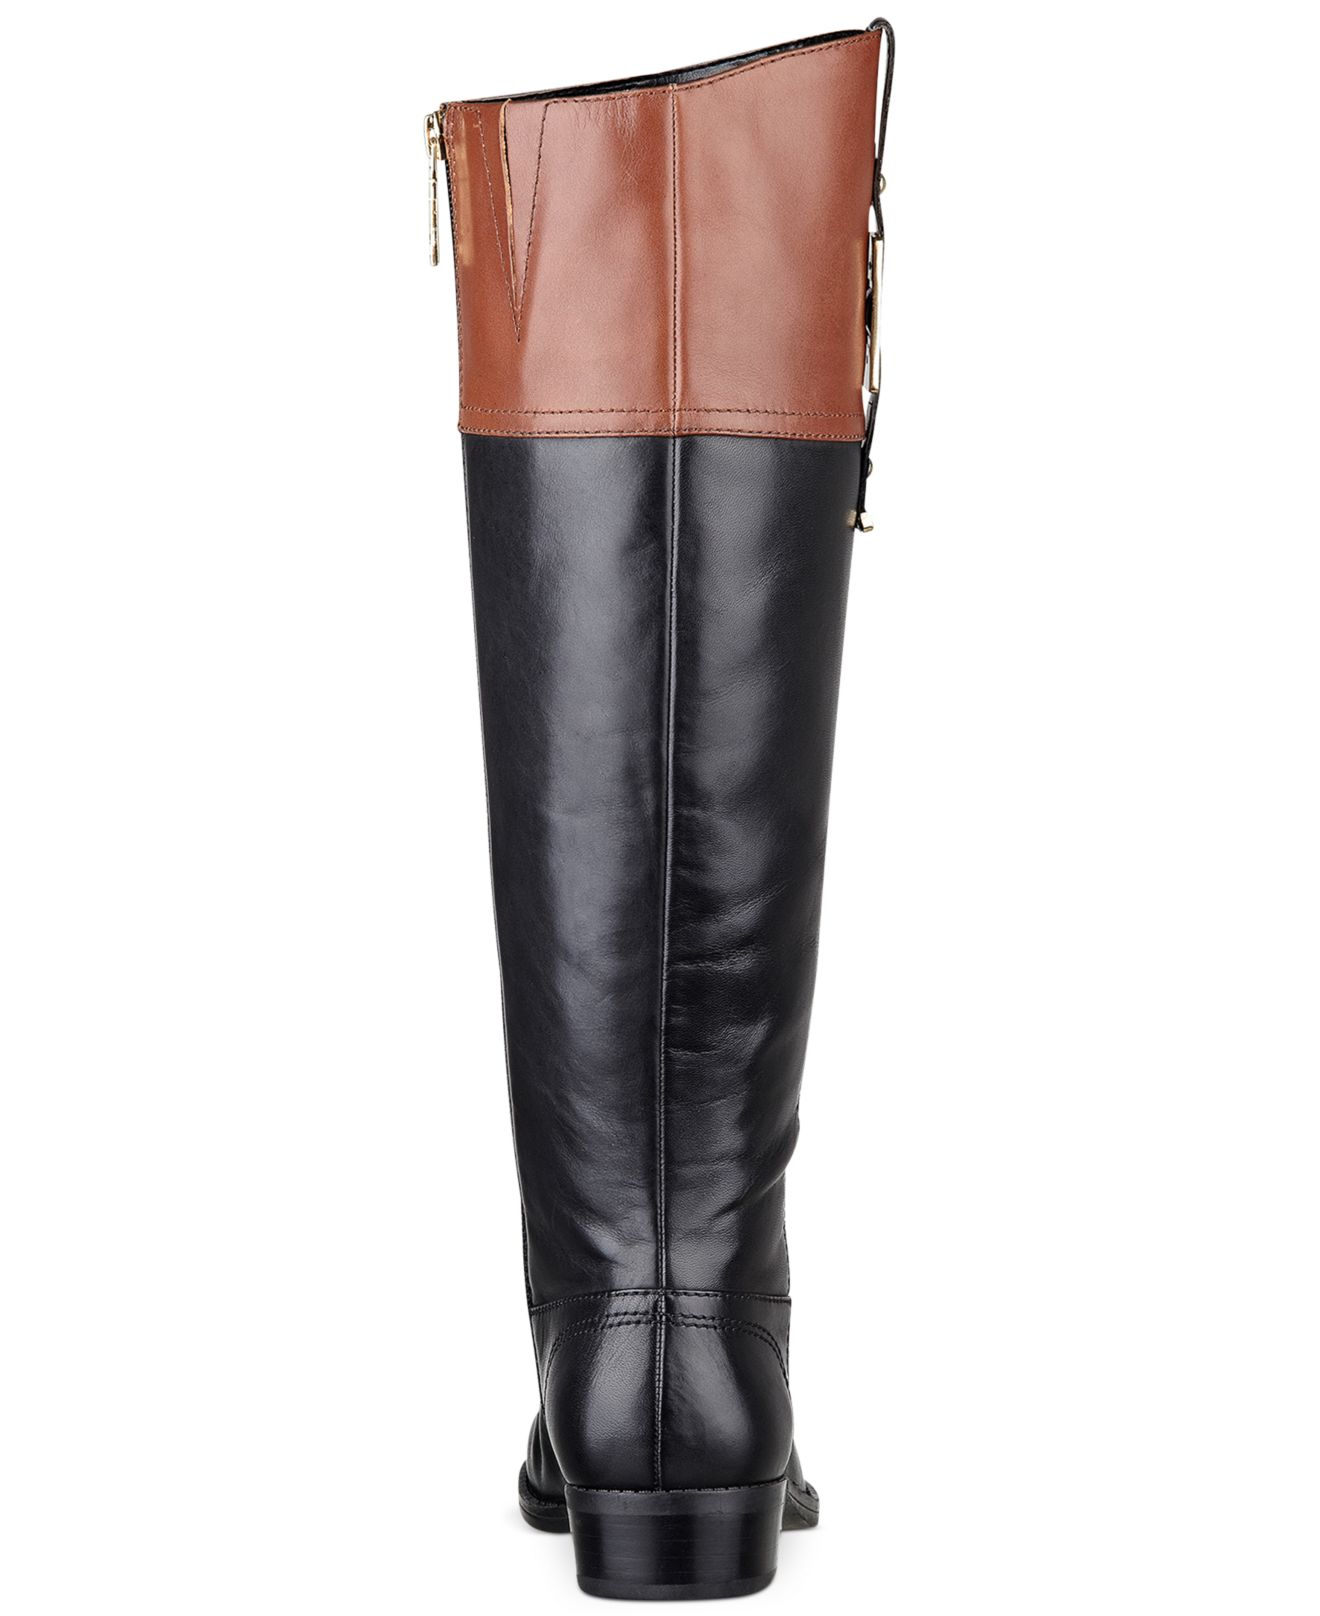 tommy hilfiger women 39 s gibsy tall riding boots in black lyst. Black Bedroom Furniture Sets. Home Design Ideas